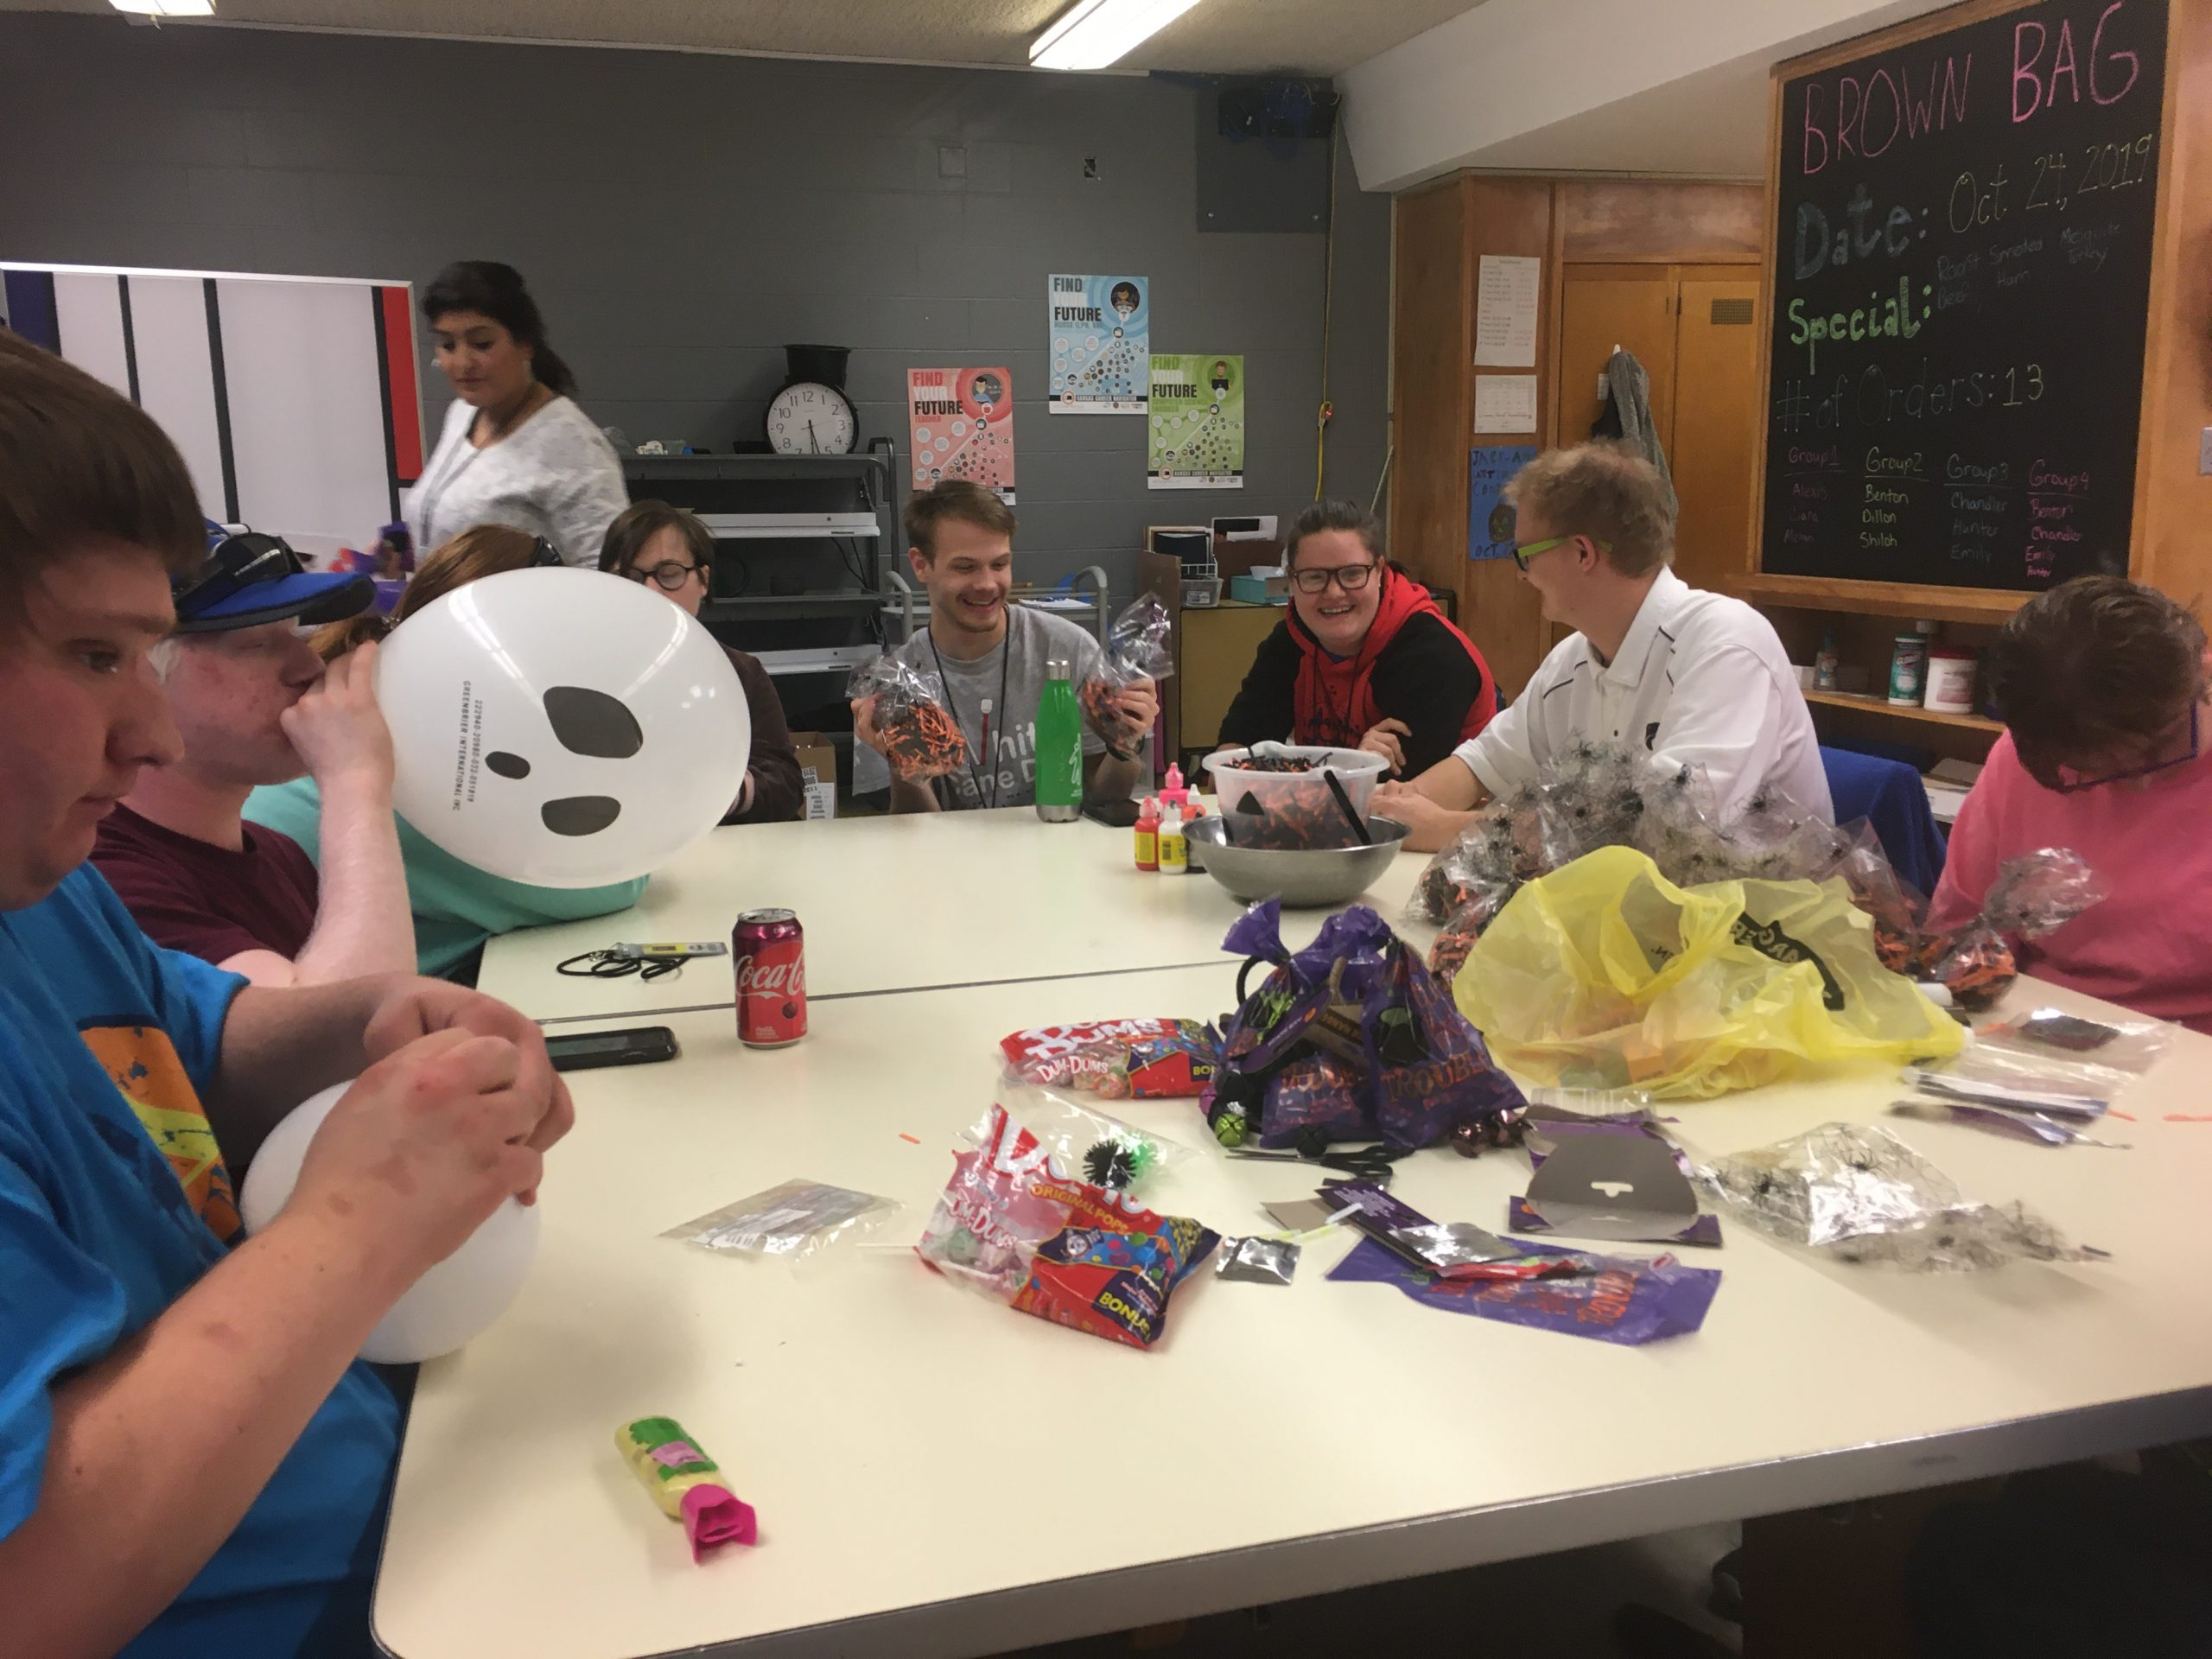 7 students sitting at a table working on a project together. One student is blowing up a balloon with a ghost face on it.